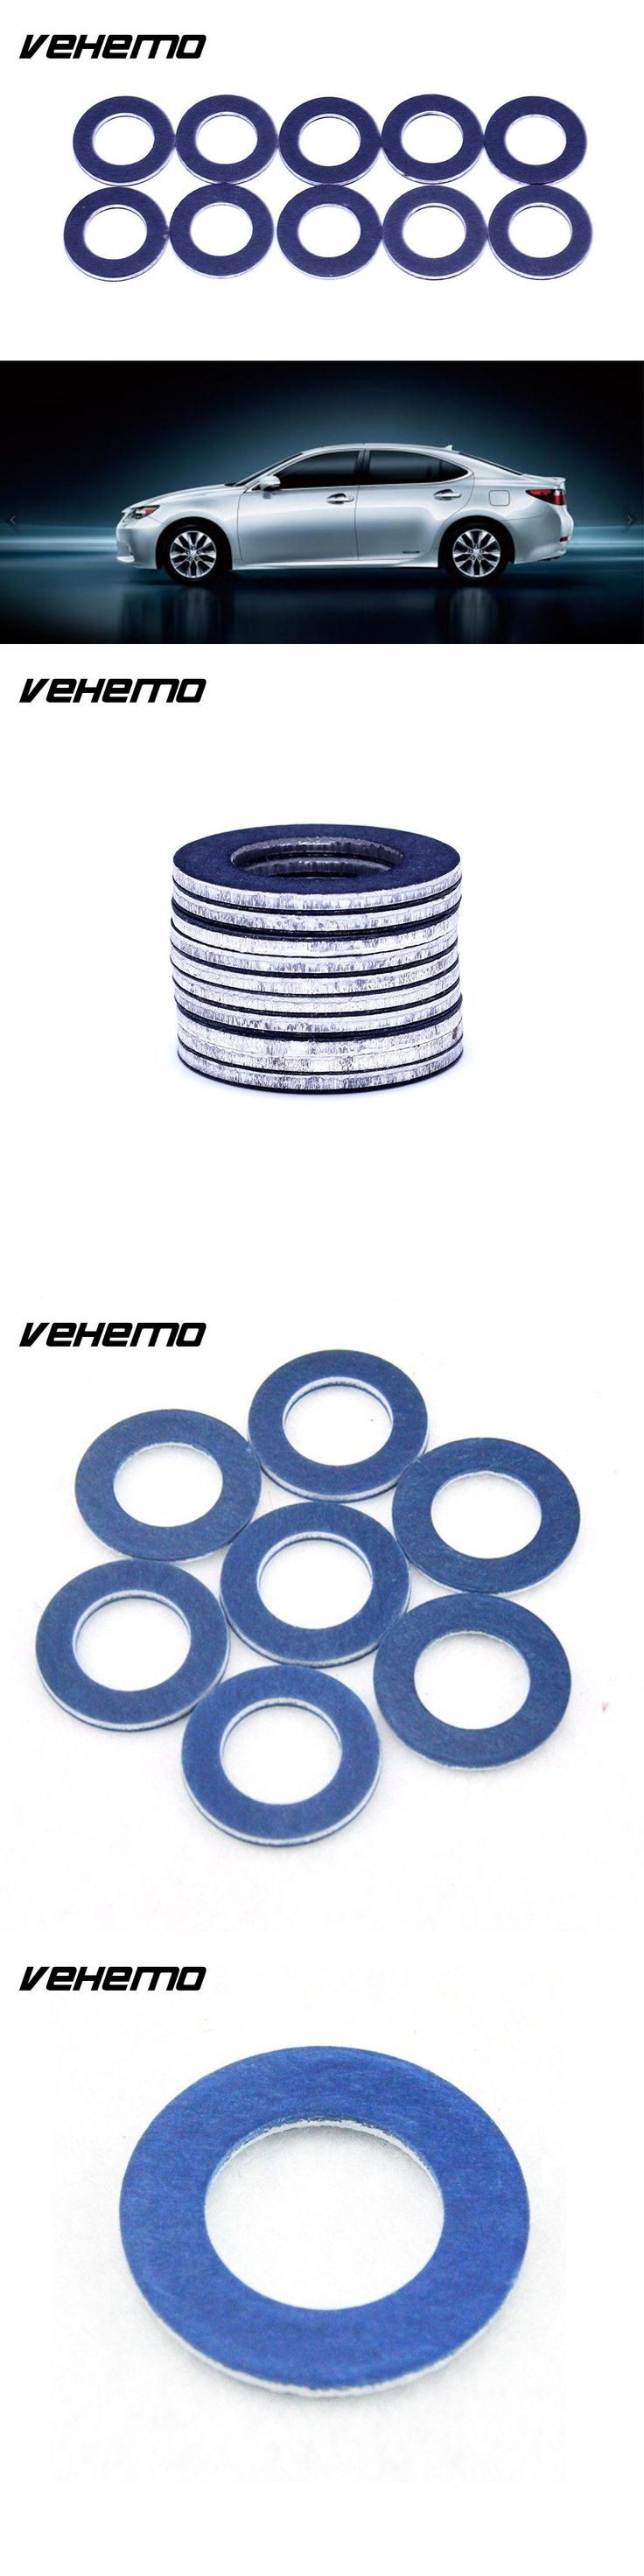 Vehemo 90430-12031 Drain Plug Gaskets Accessories Oil Drain Plug Washer Premium Cover for Lexus Toyota Parts